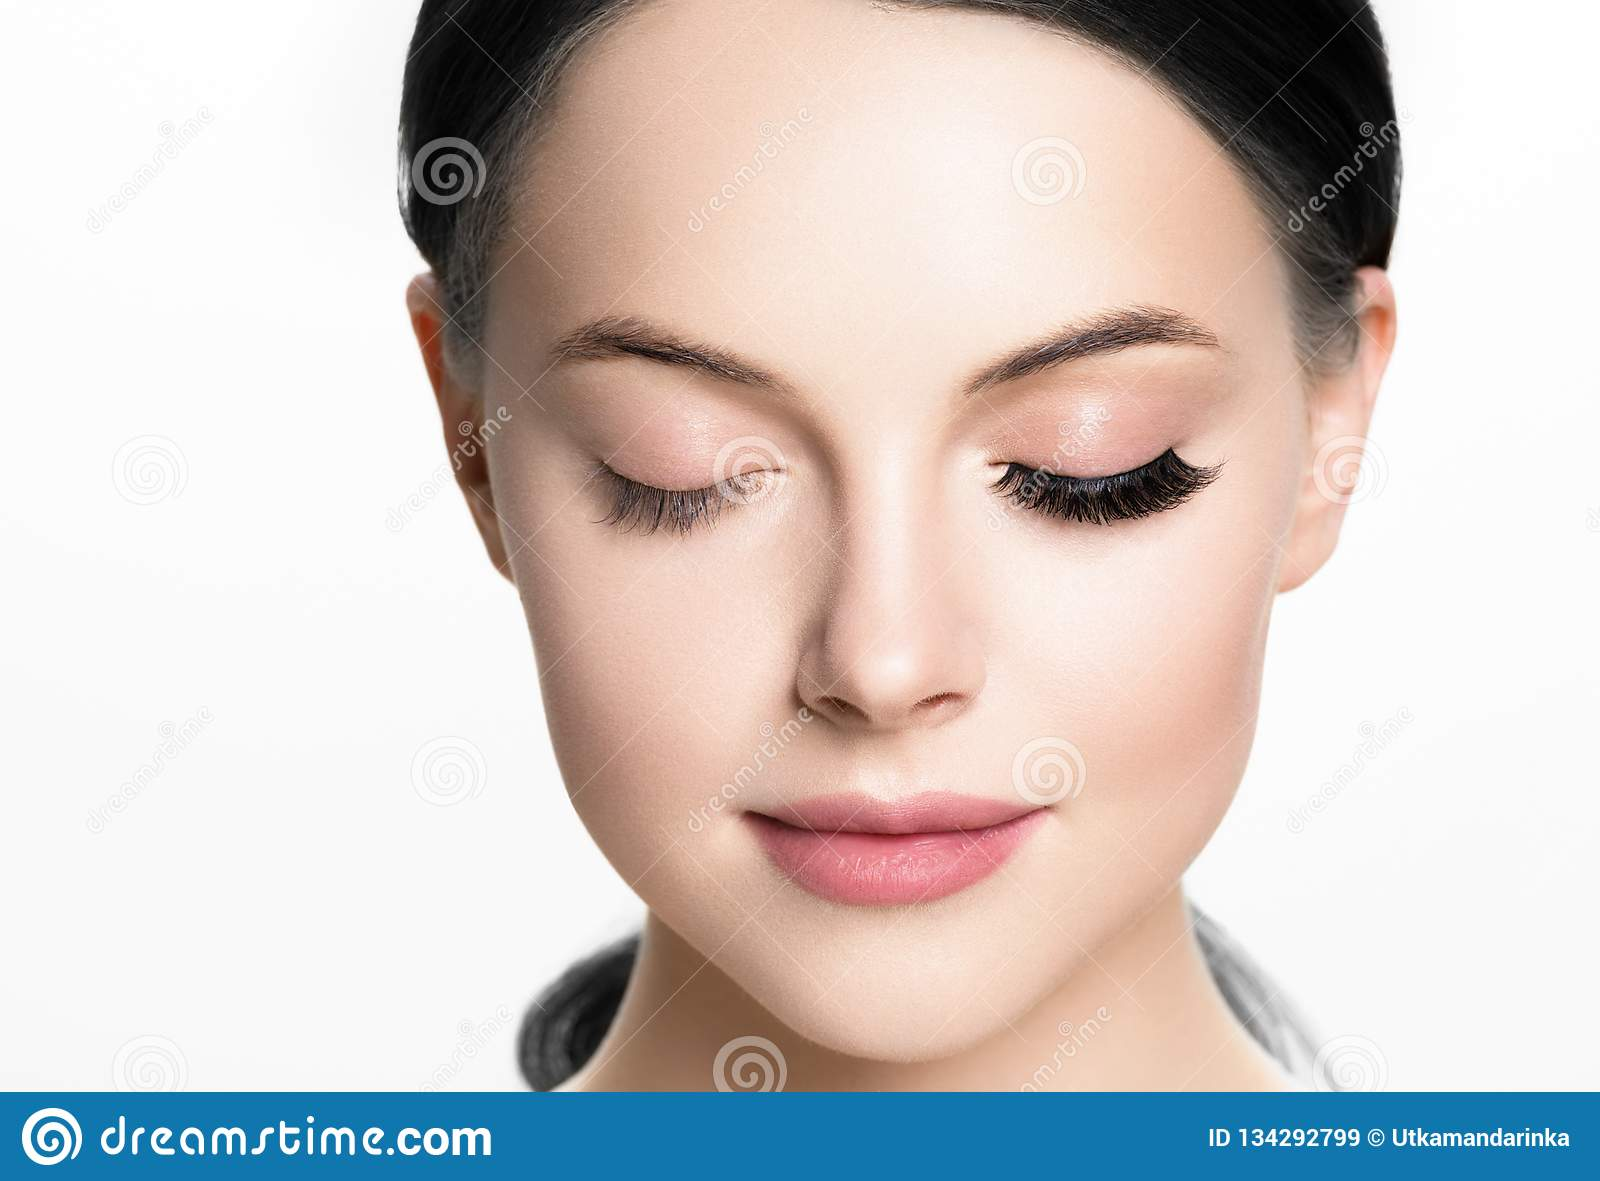 Beautiful woman face with eyelashes lashes extension before and after beauty healthy skin natural makeup closed eyes